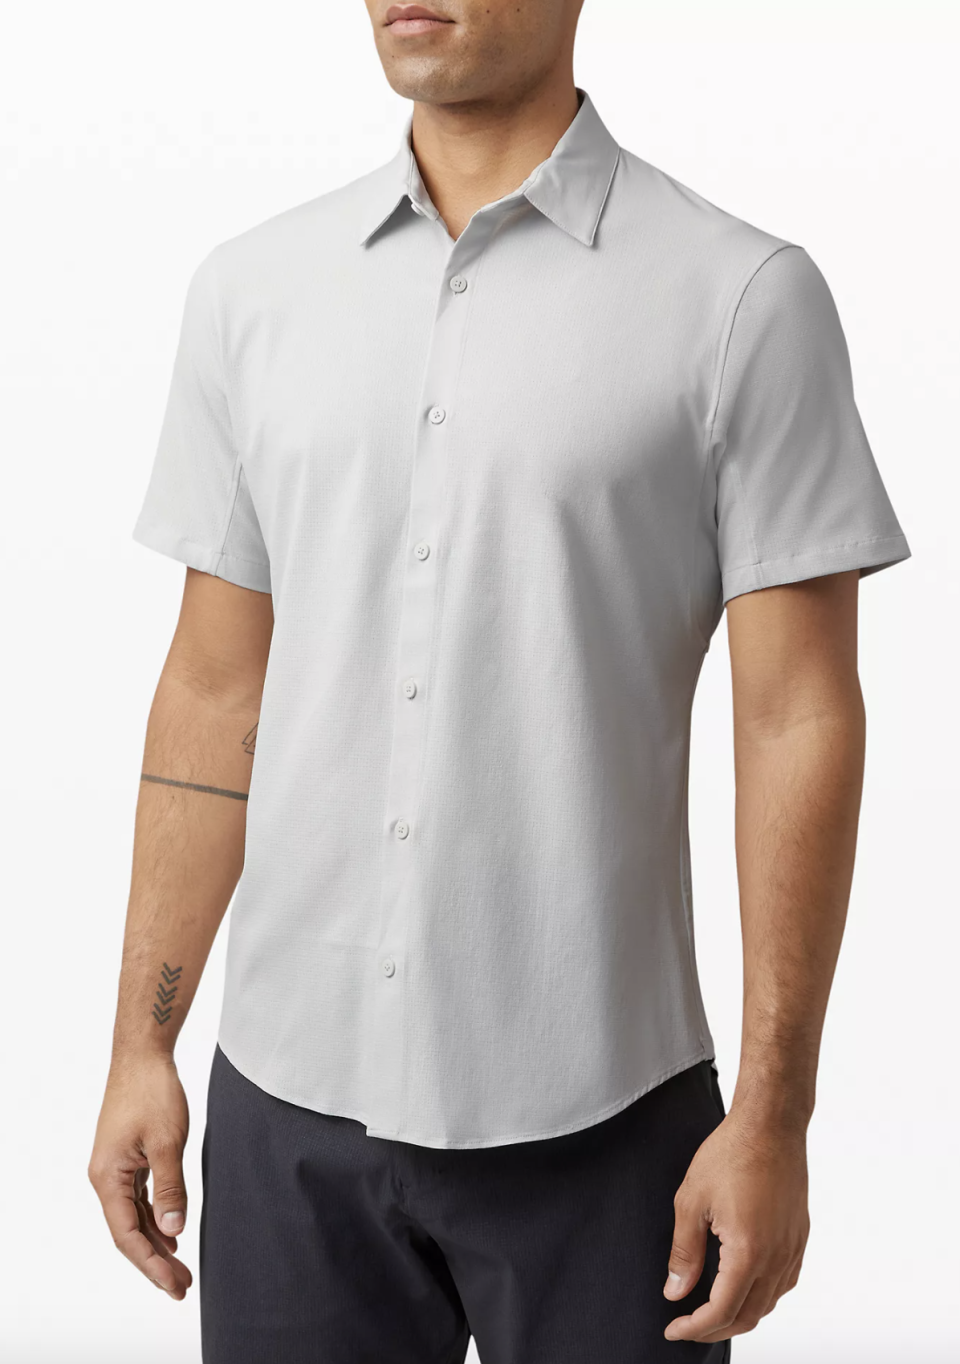 Airing Easy Short Sleeve Shirt Ventlight Mesh- from $49 (originally $108)